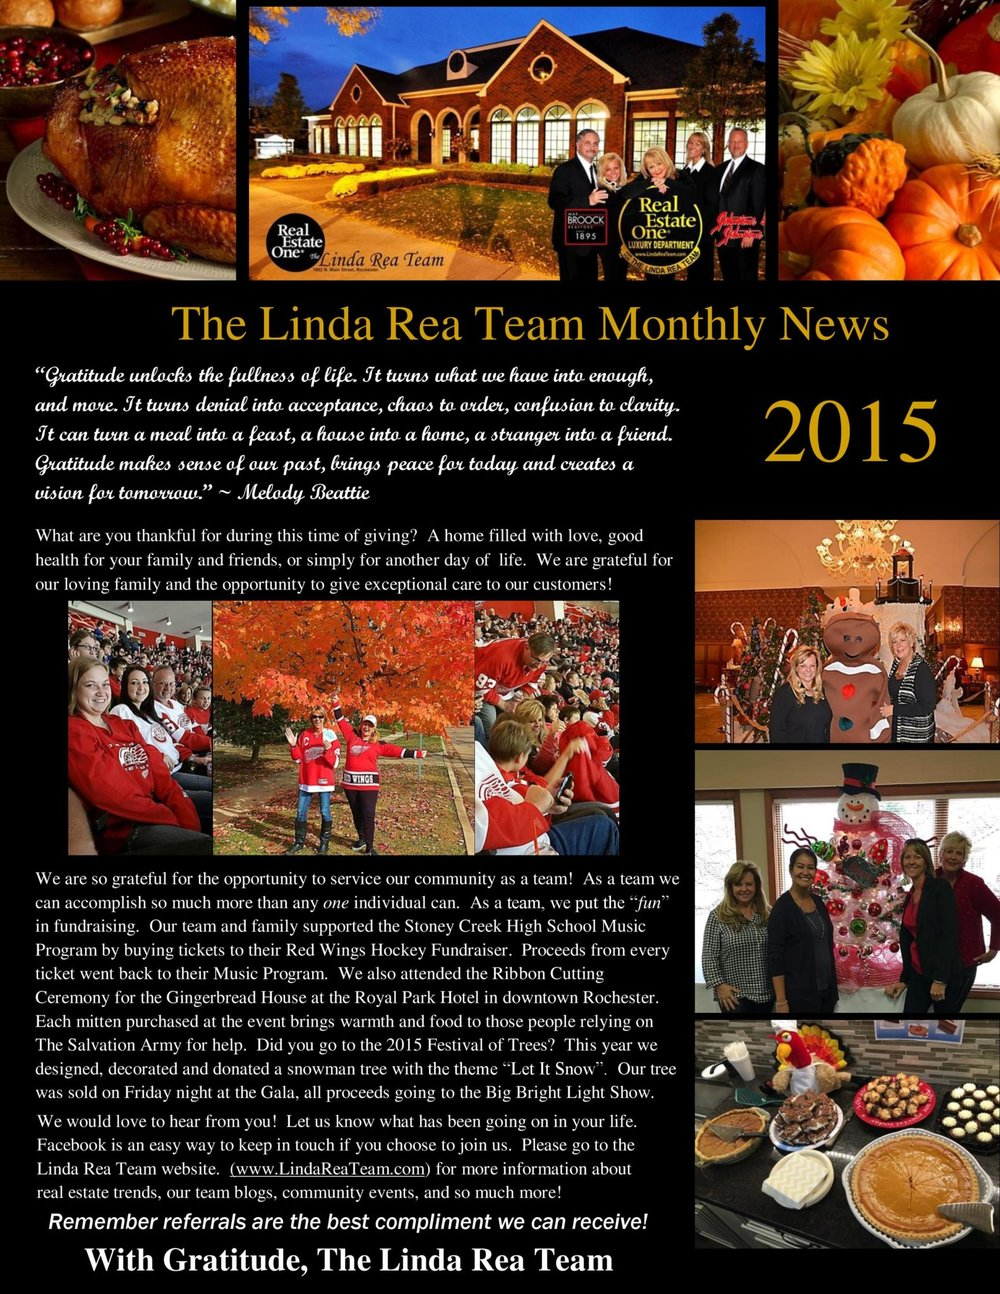 The-Linda-Rea-Team-Monthly-News-November-2015-page-001.jpg